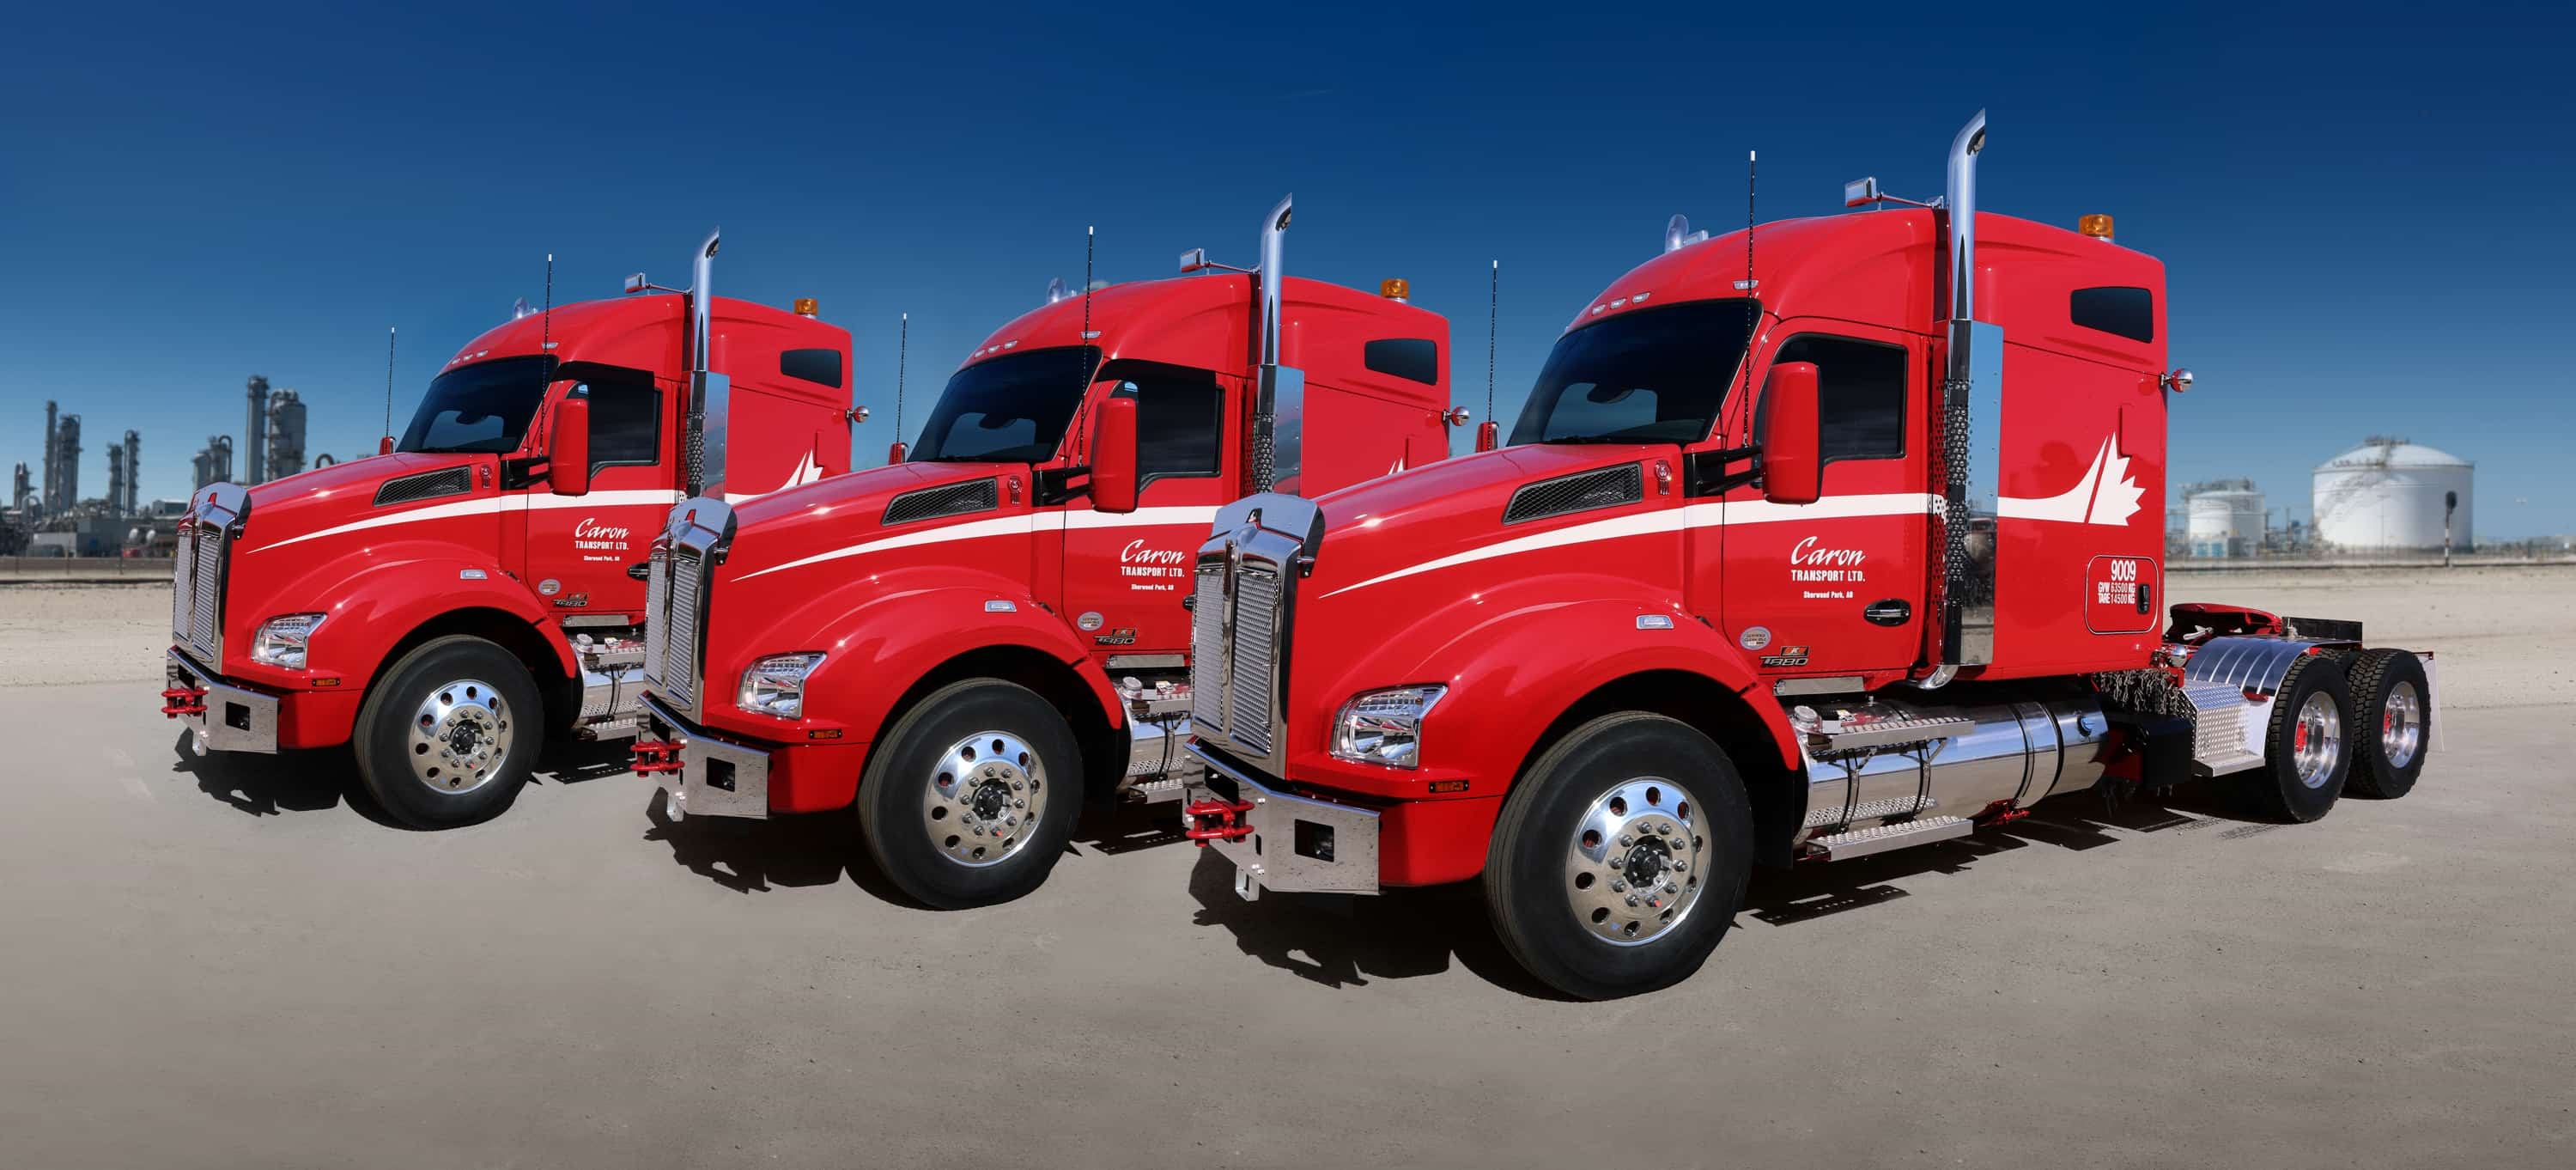 Three large semi-trucks branded with Caron logo and colours